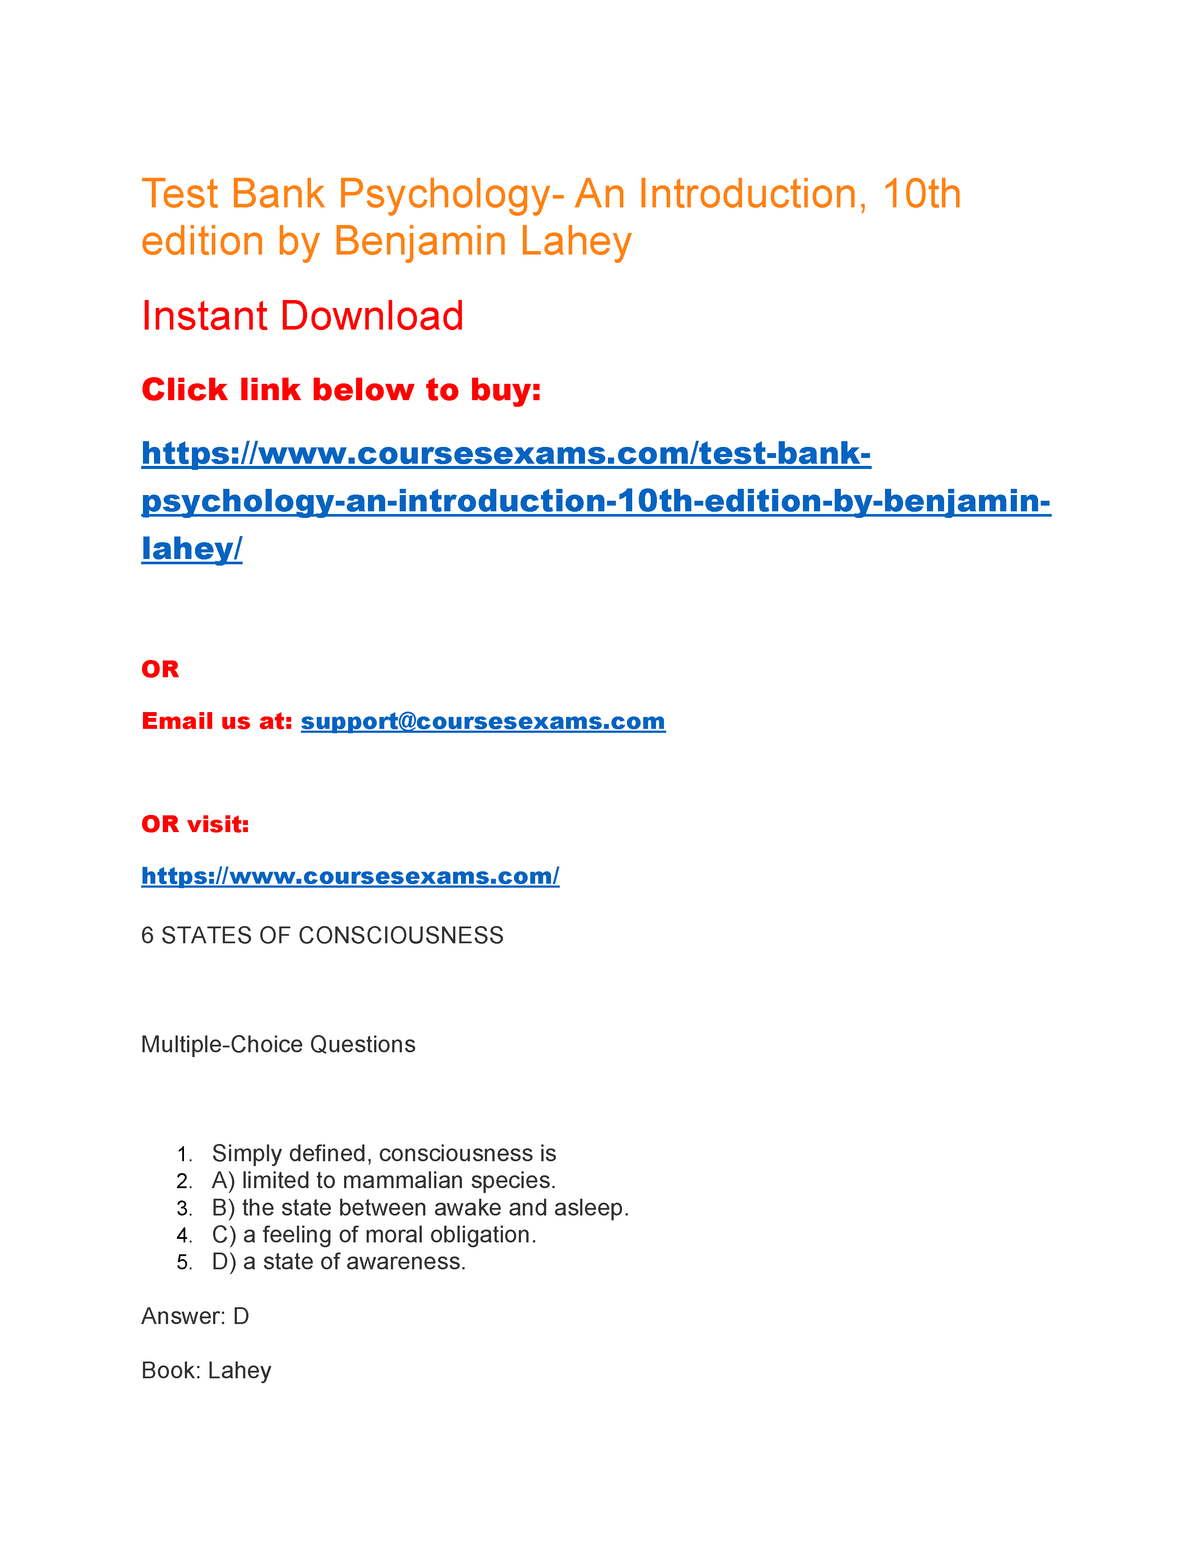 Test Bank Psychology- An Introduction, 10th edition by Benjamin